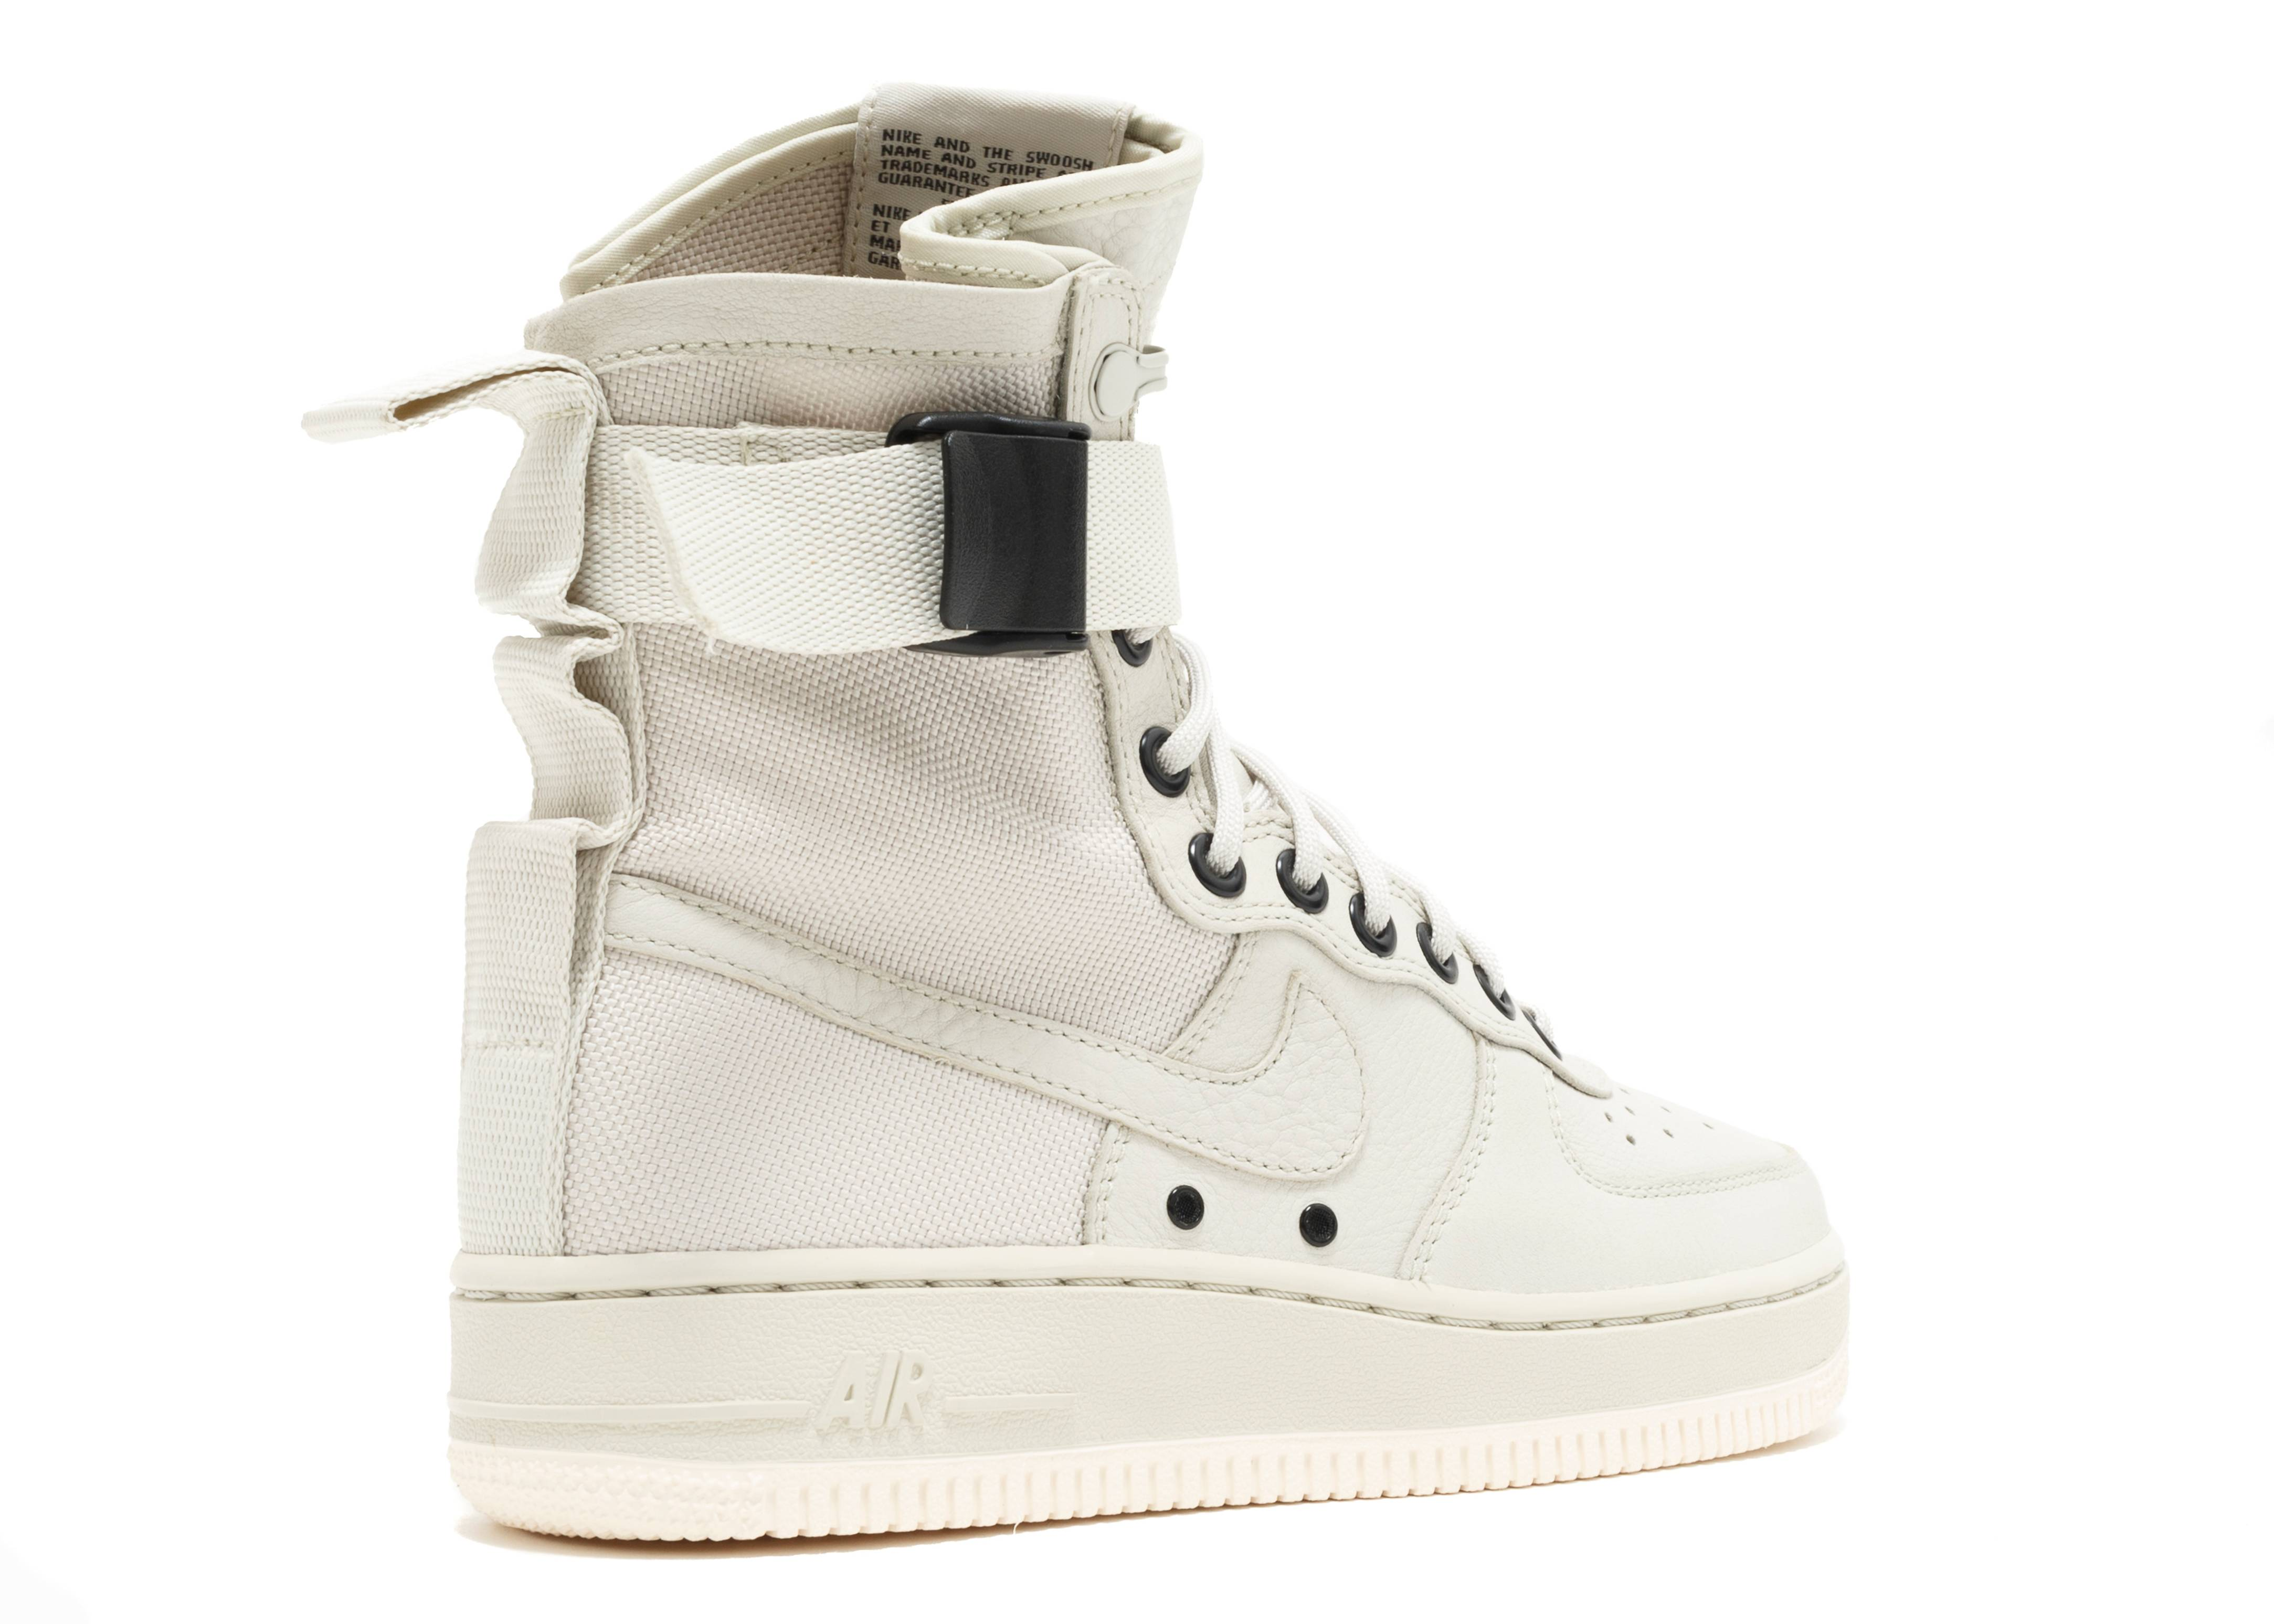 W S Sf Air Force One High Quot Special Field Urban Utility